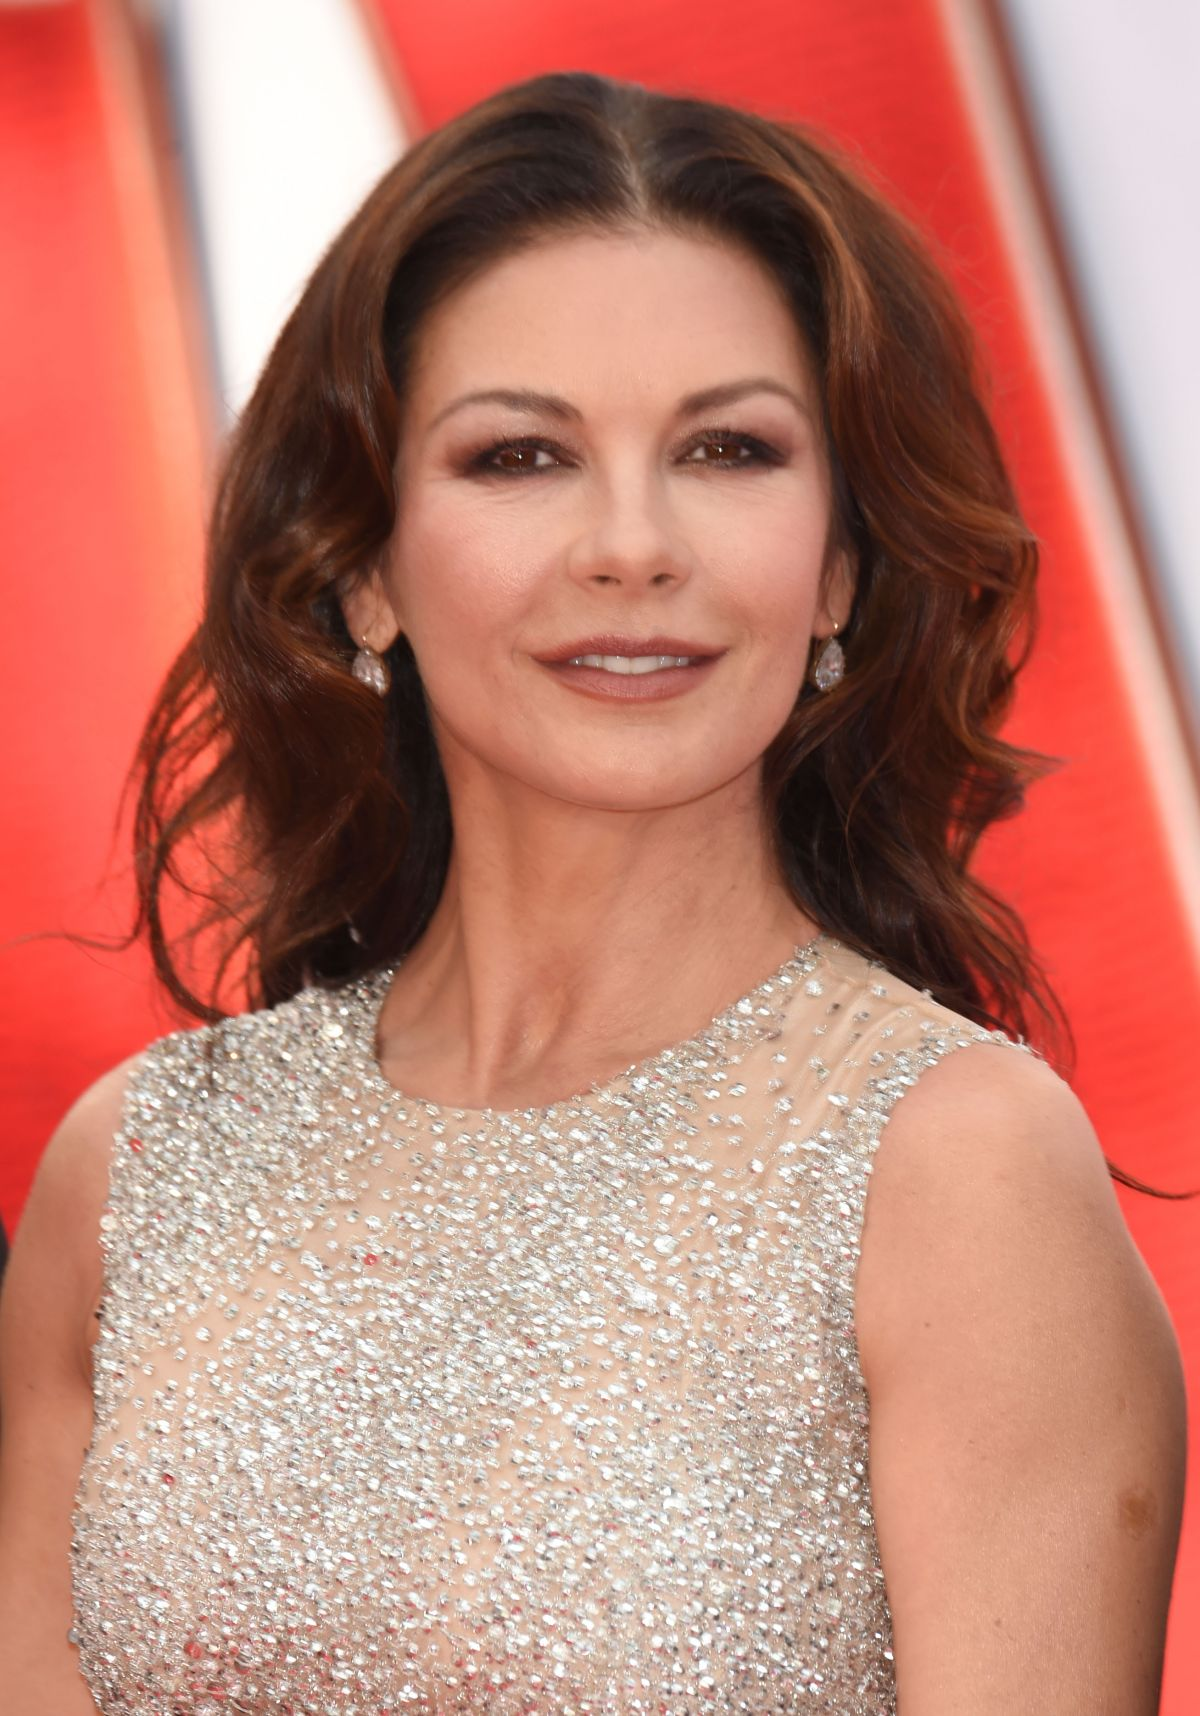 CATHERINE ZETA JONES at Ant-man Premiere in London - HawtCelebs ...